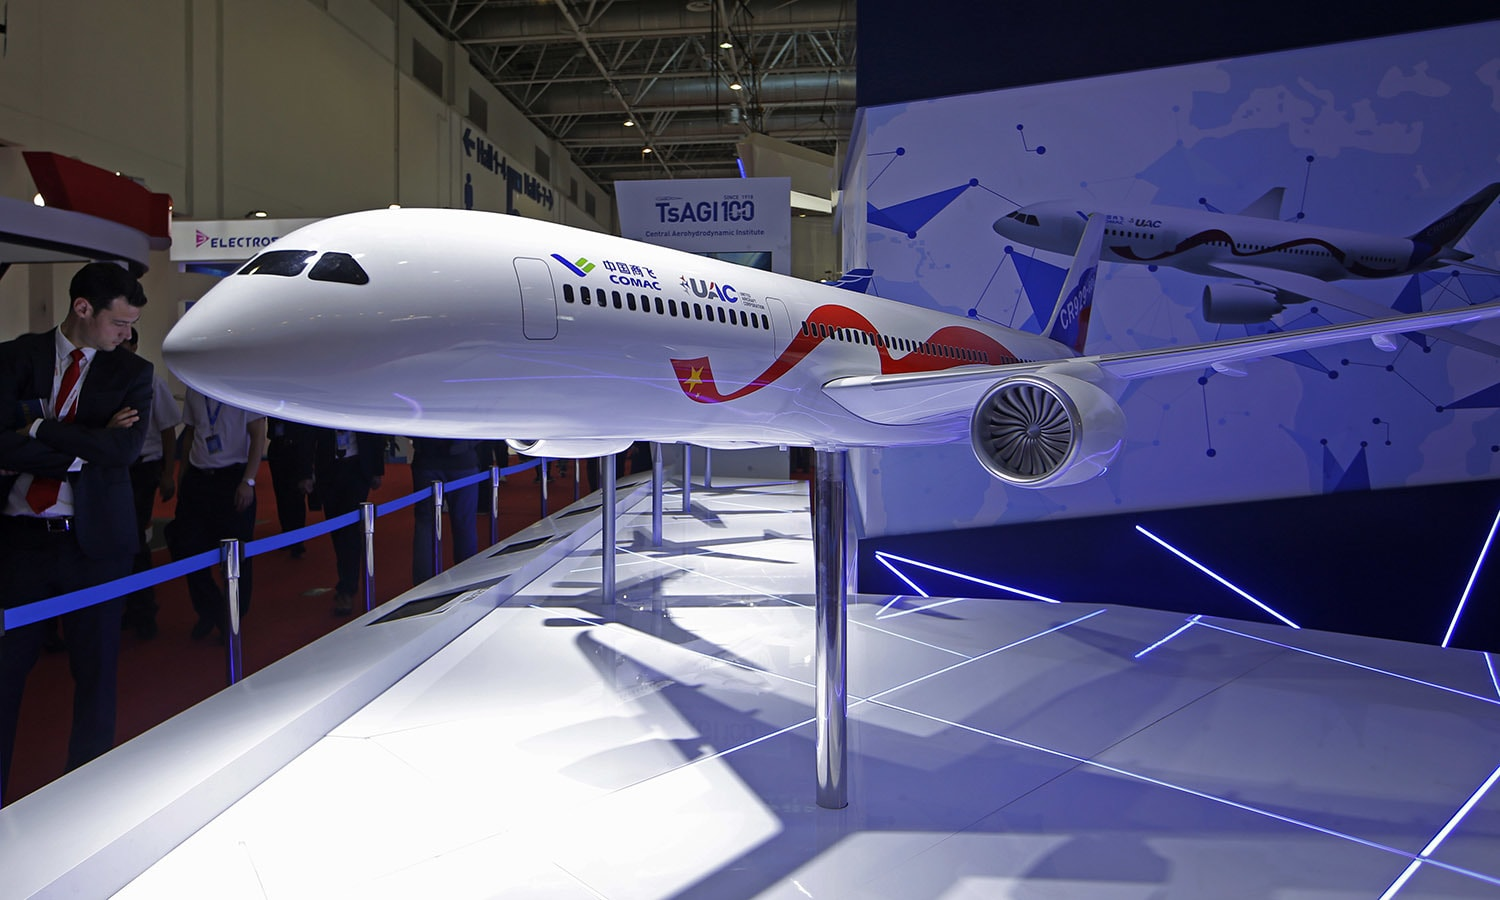 In this November 7 file photo, a model of the CRAIC CR929-600 airliner is displayed during the Airshow China 2018, in Zhuhai city, south China's Guangdong province. — AP